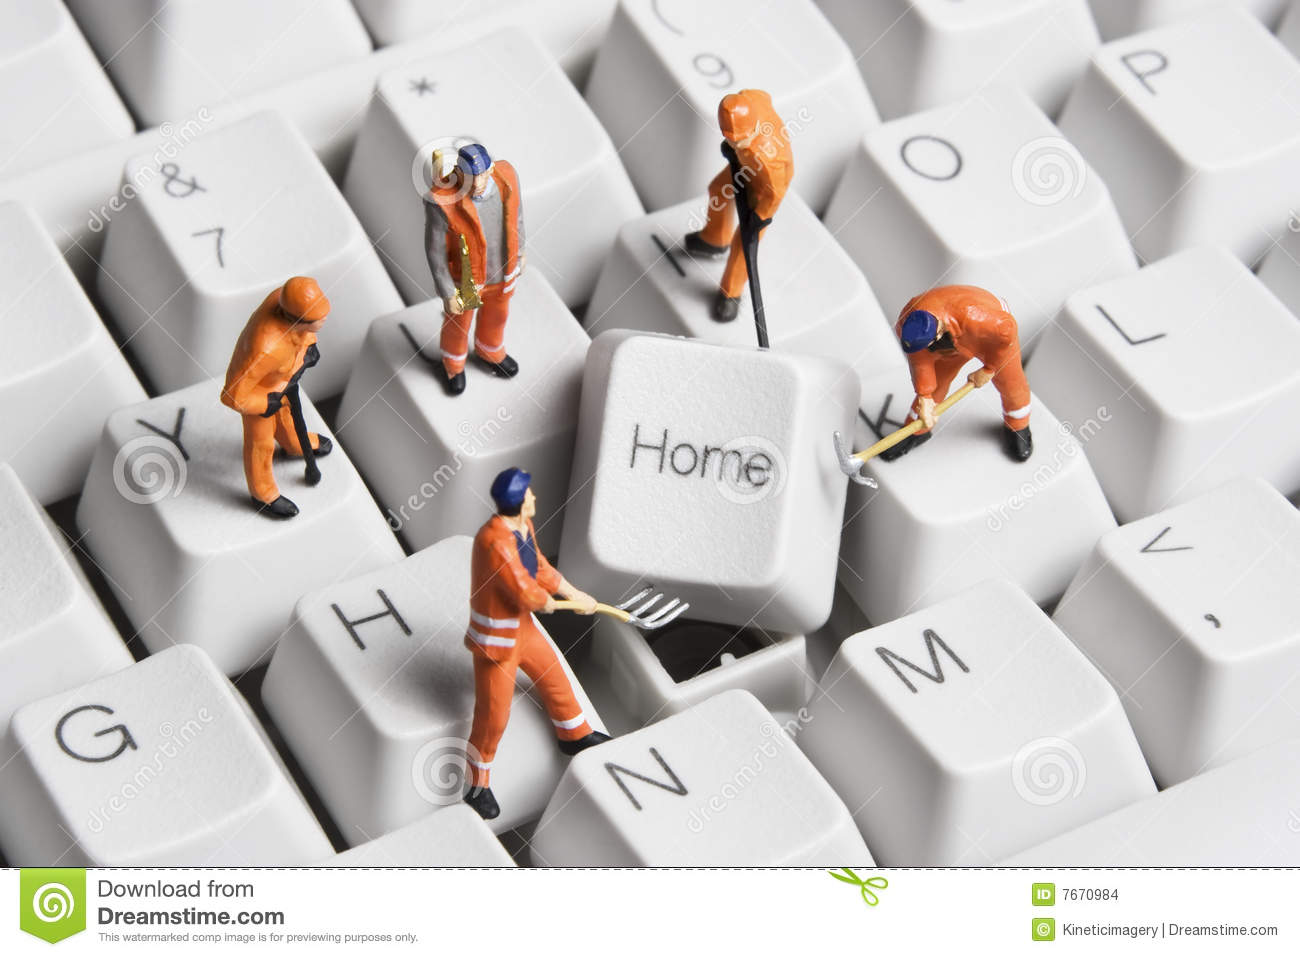 Building A Home Based Business Stock Photo - Image of protect ...